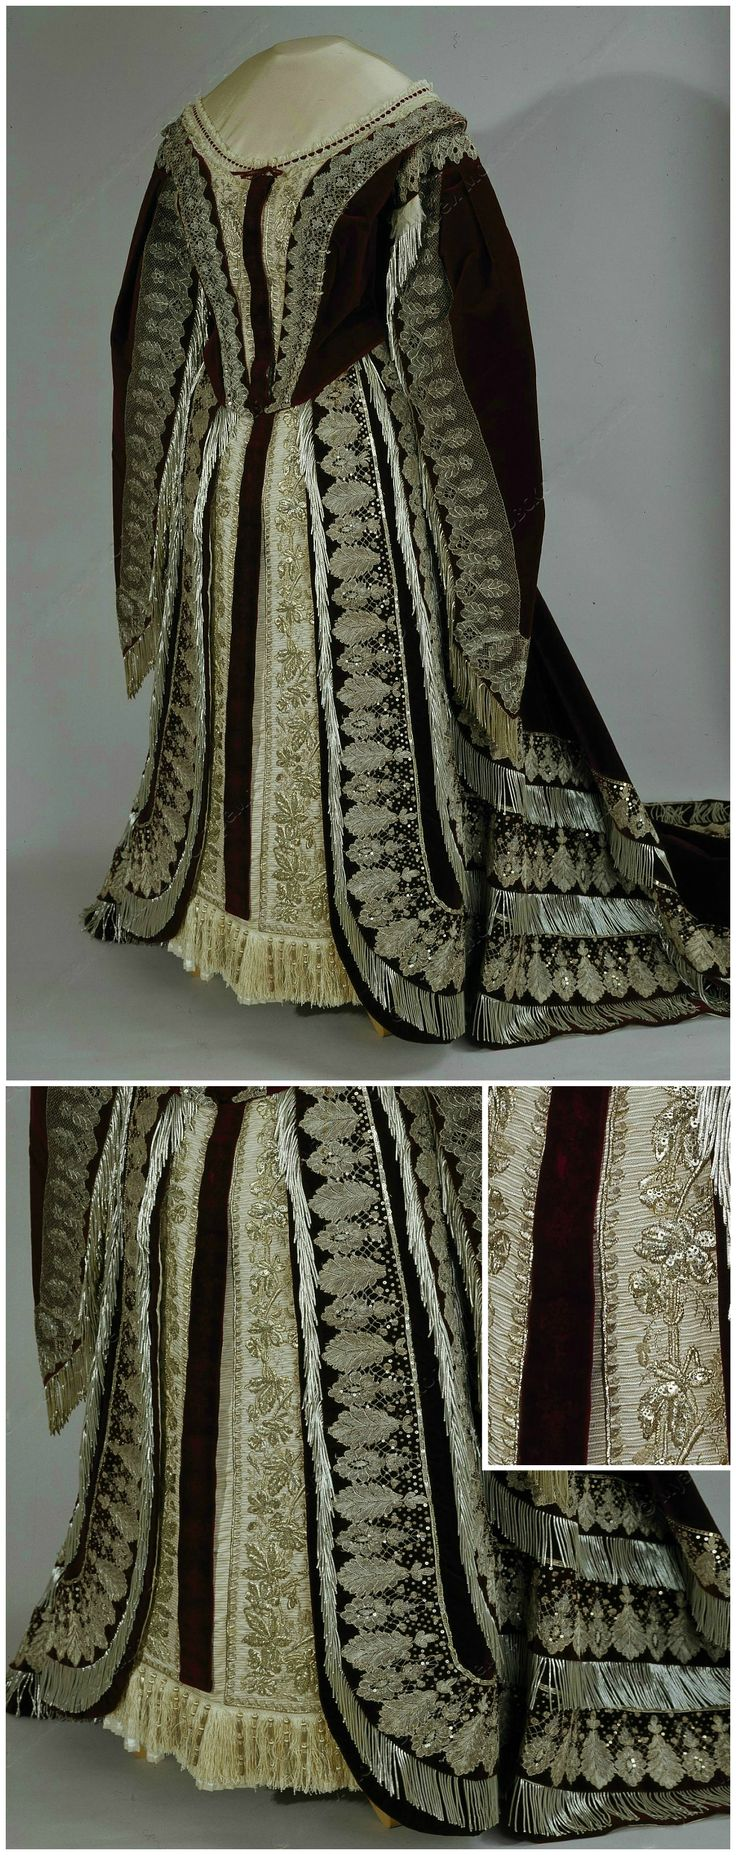 Russian court dress, by Albert Franck company, Frankfurt, Germany, 1898-1914 (?). Moscow Kremlin Museums. CLICK FOR LARGER IMAGES.